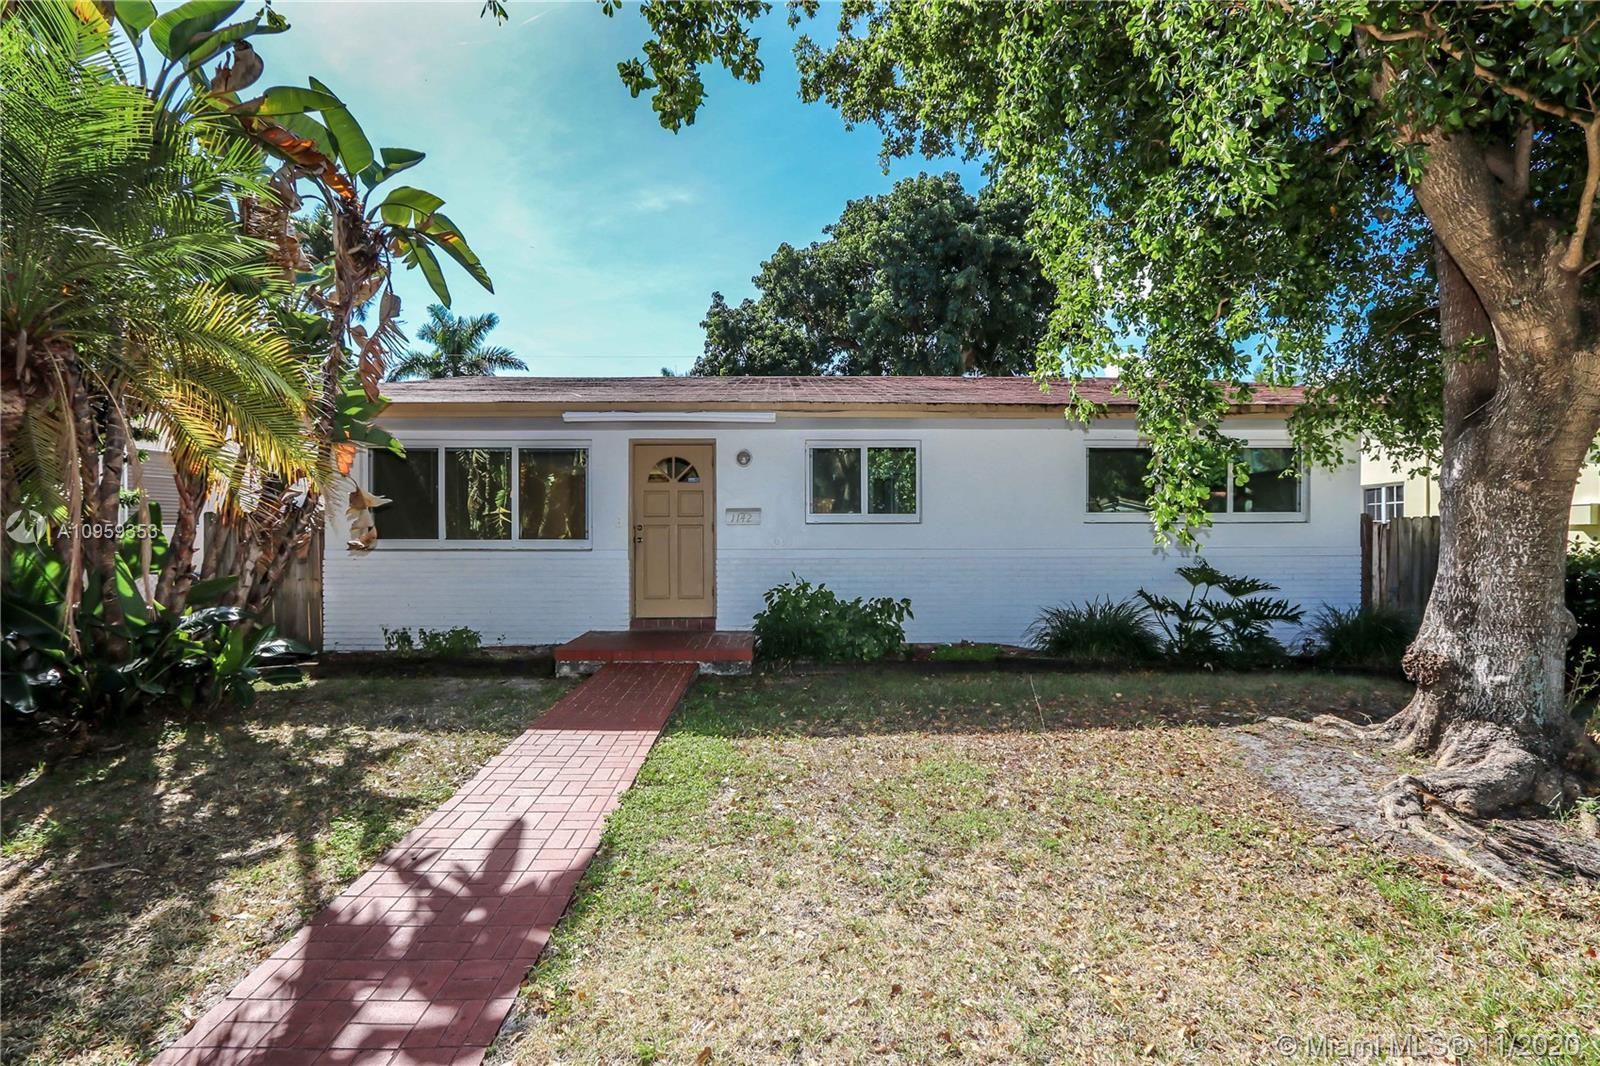 Very Bright home in Hollywood Lakes with 3 bedroom 2 bathrooms. Circular drive way. Very open layout